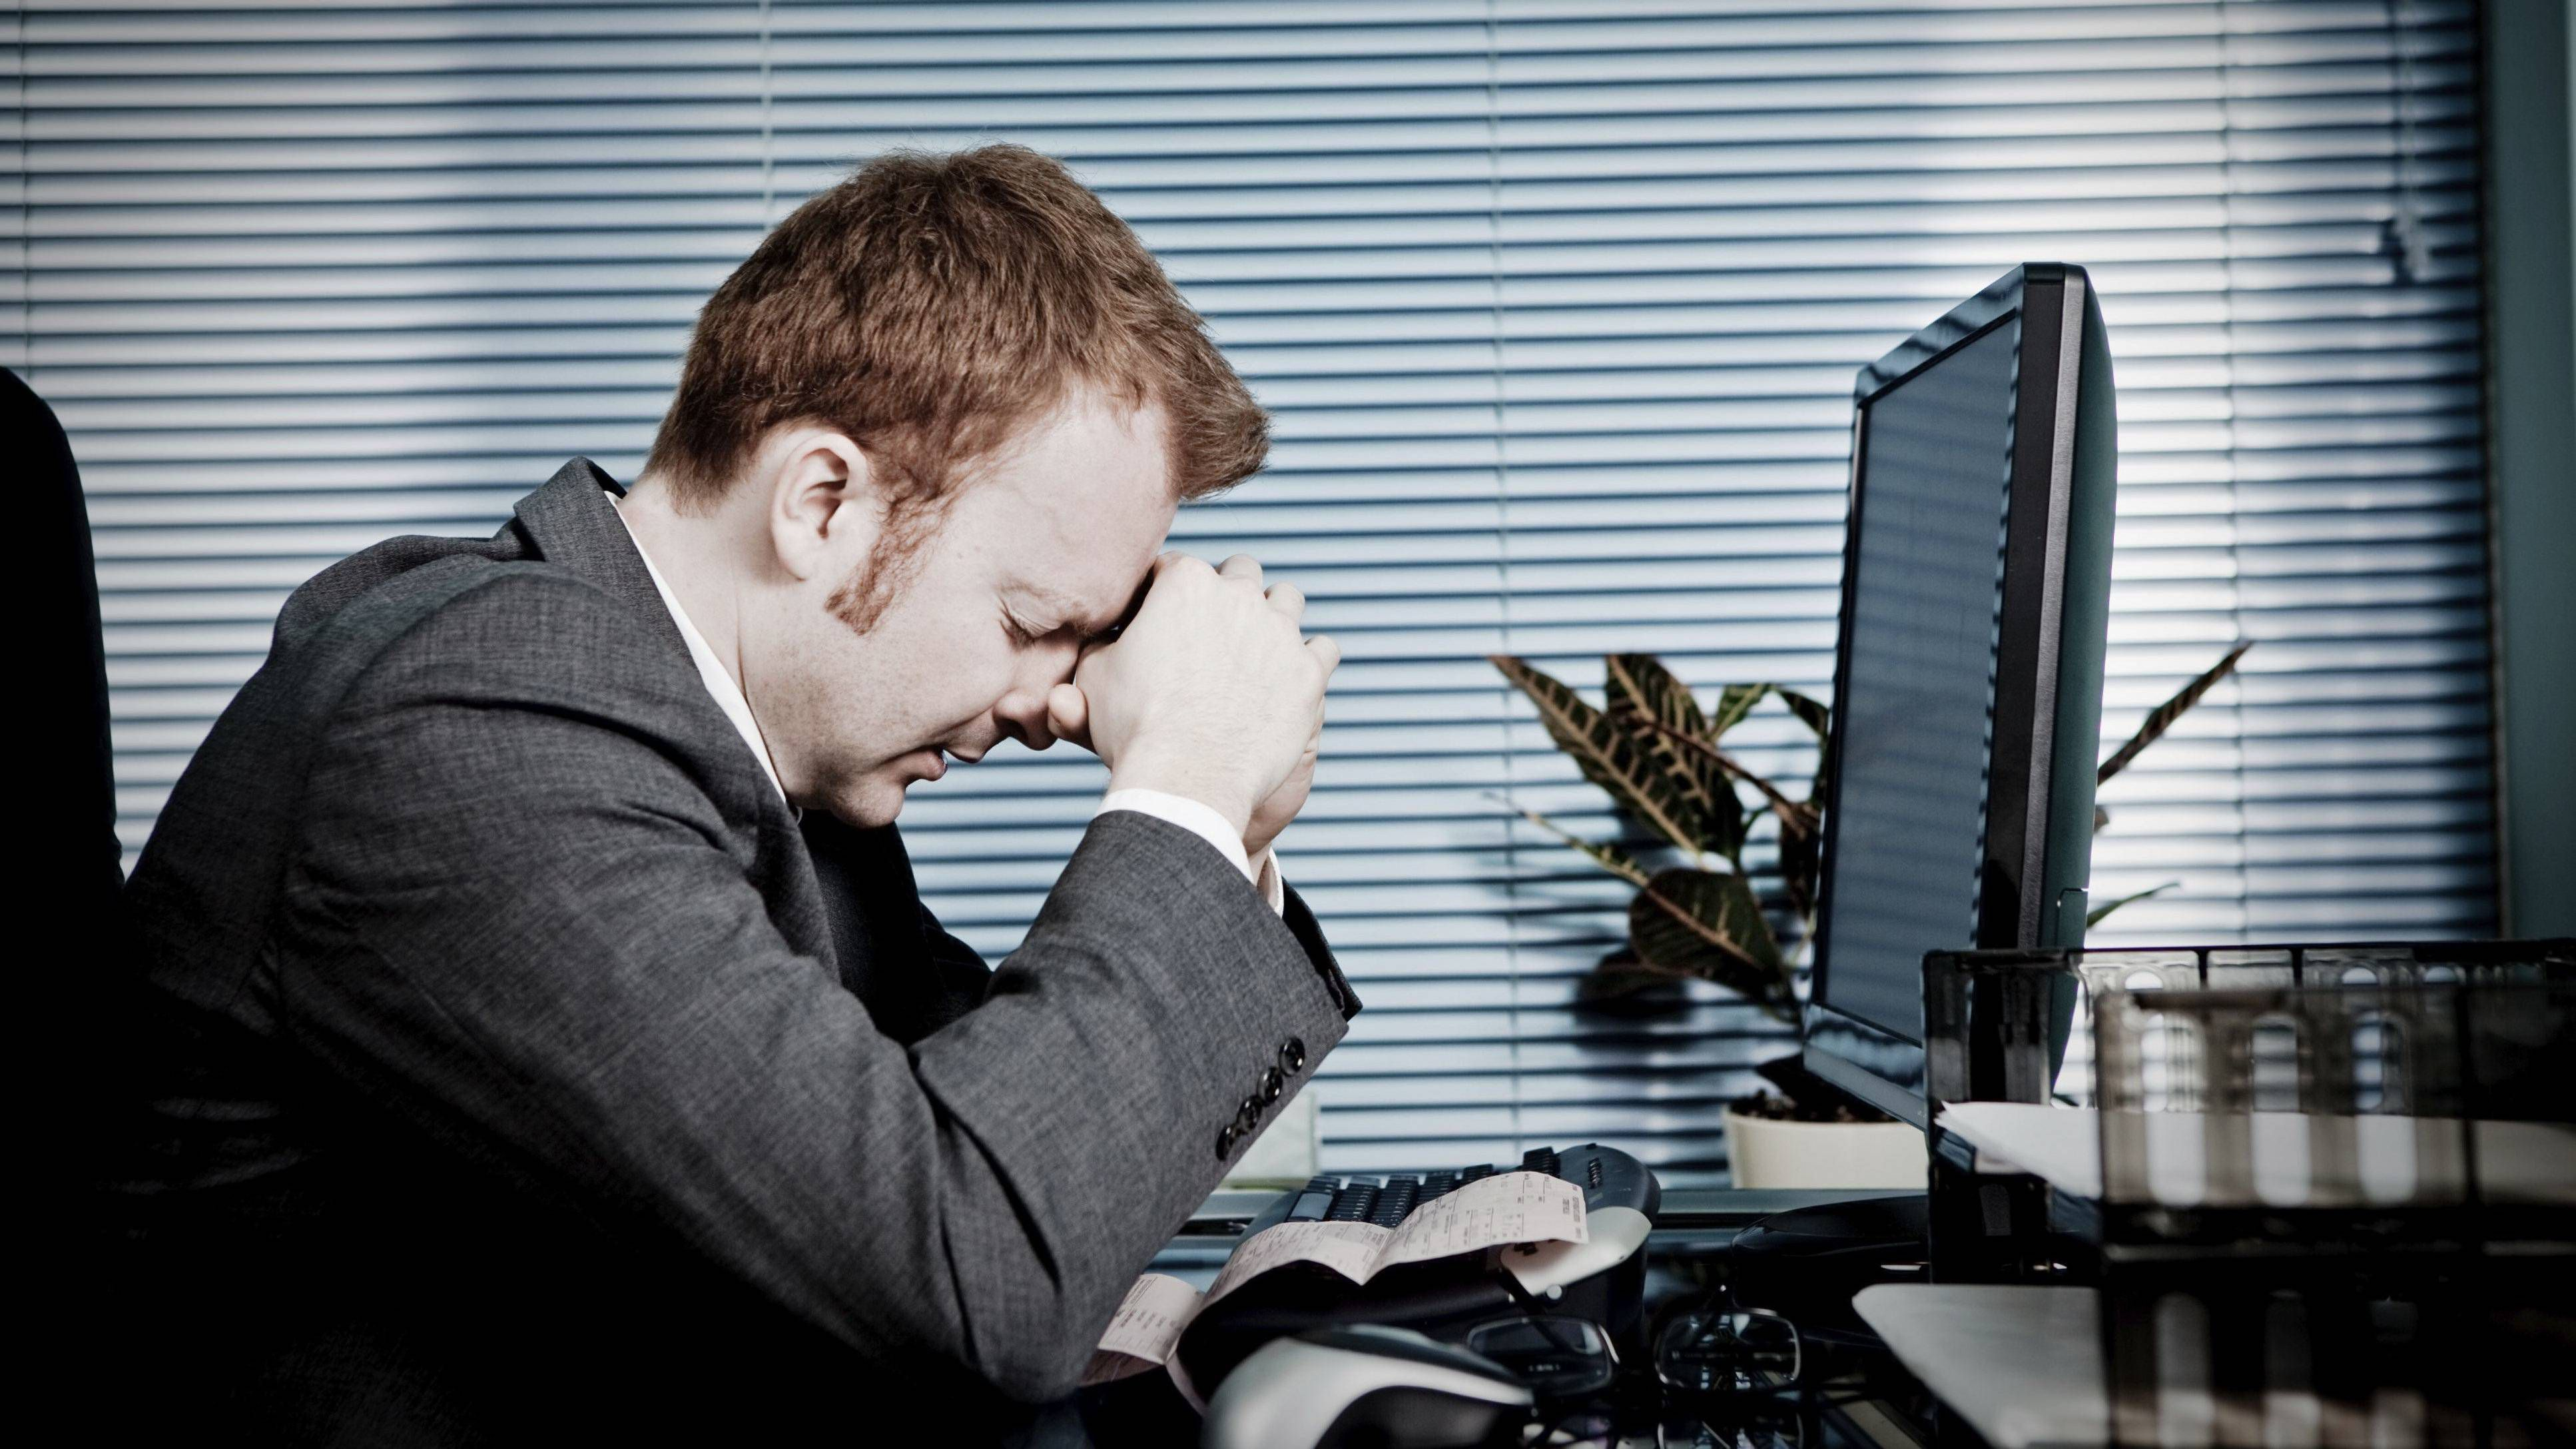 Online depression test may allow the reluctant to seek help - The